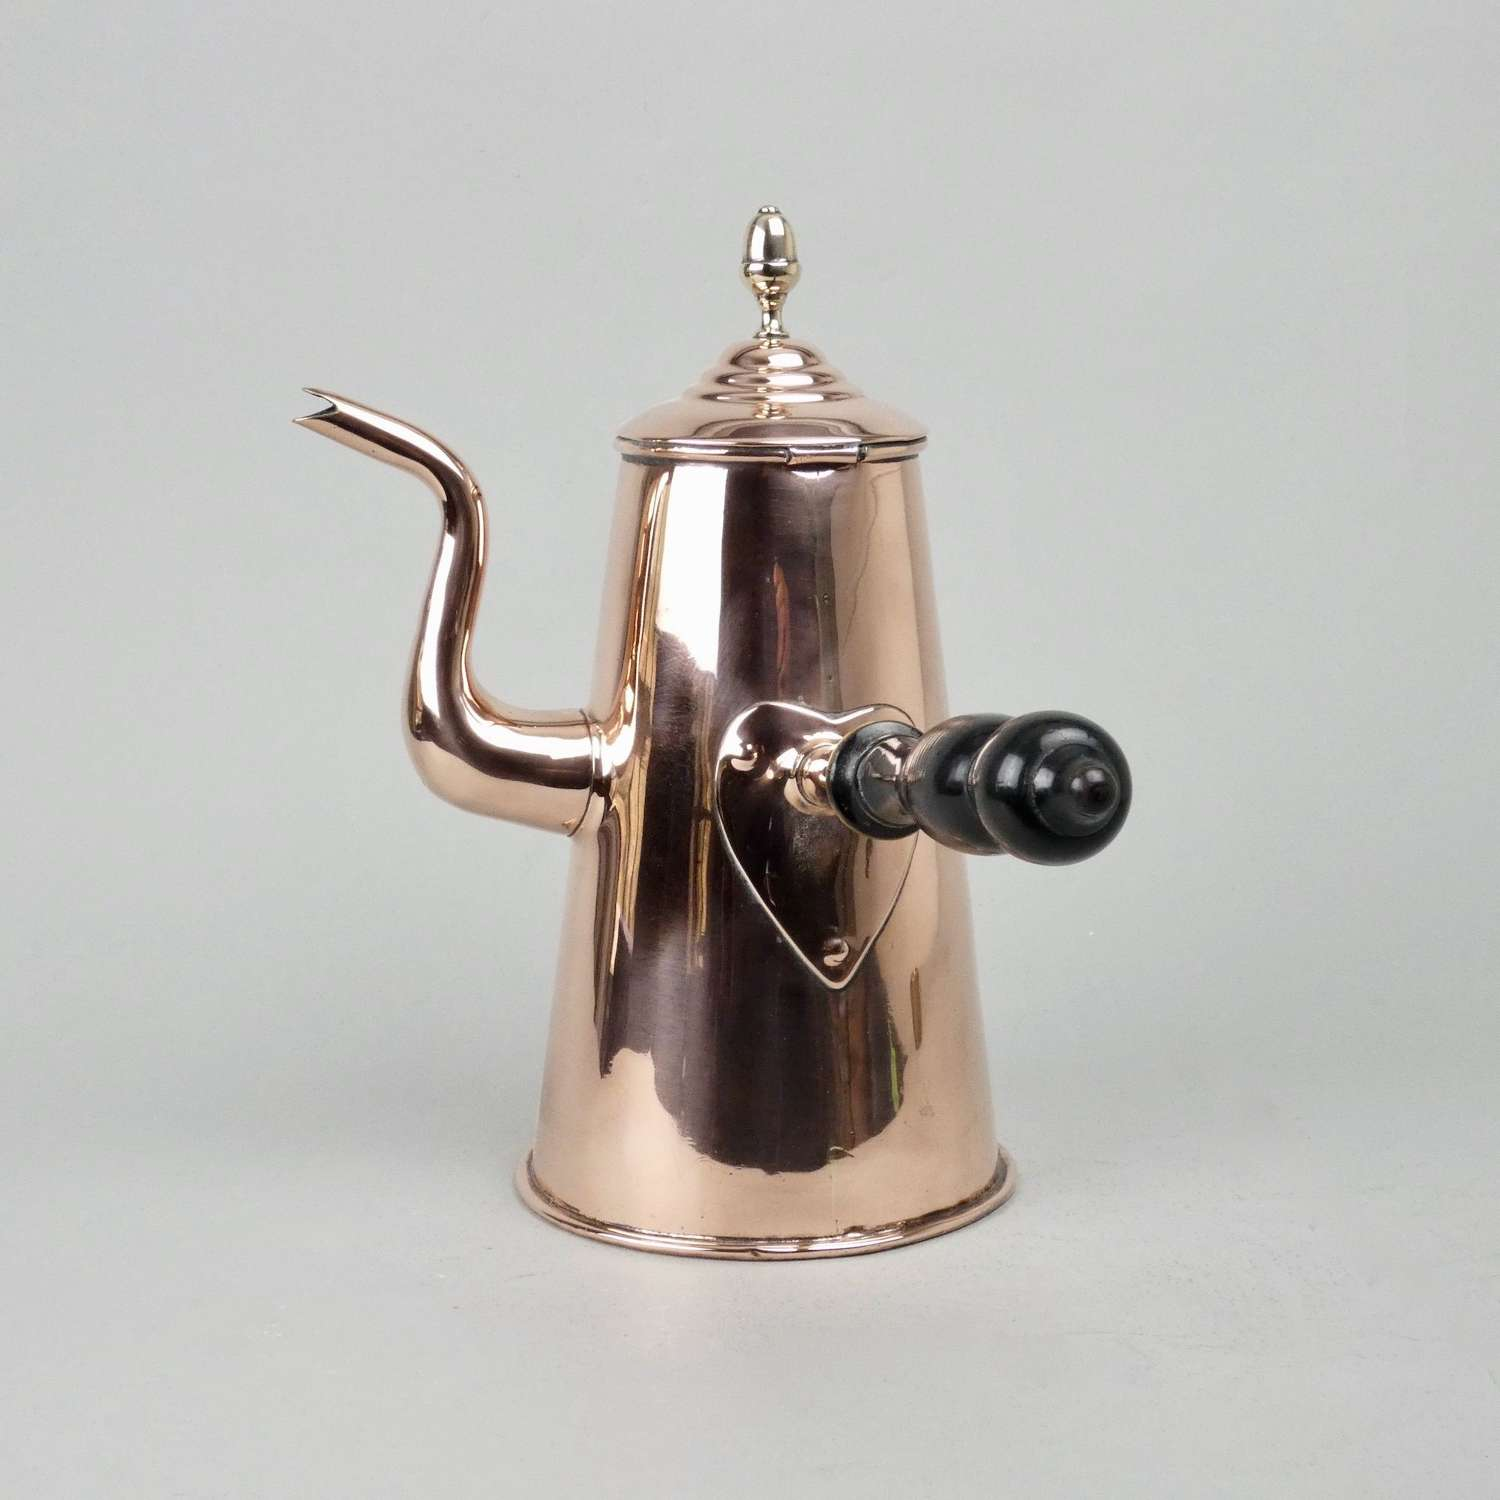 Victorian chocolate or coffeepot